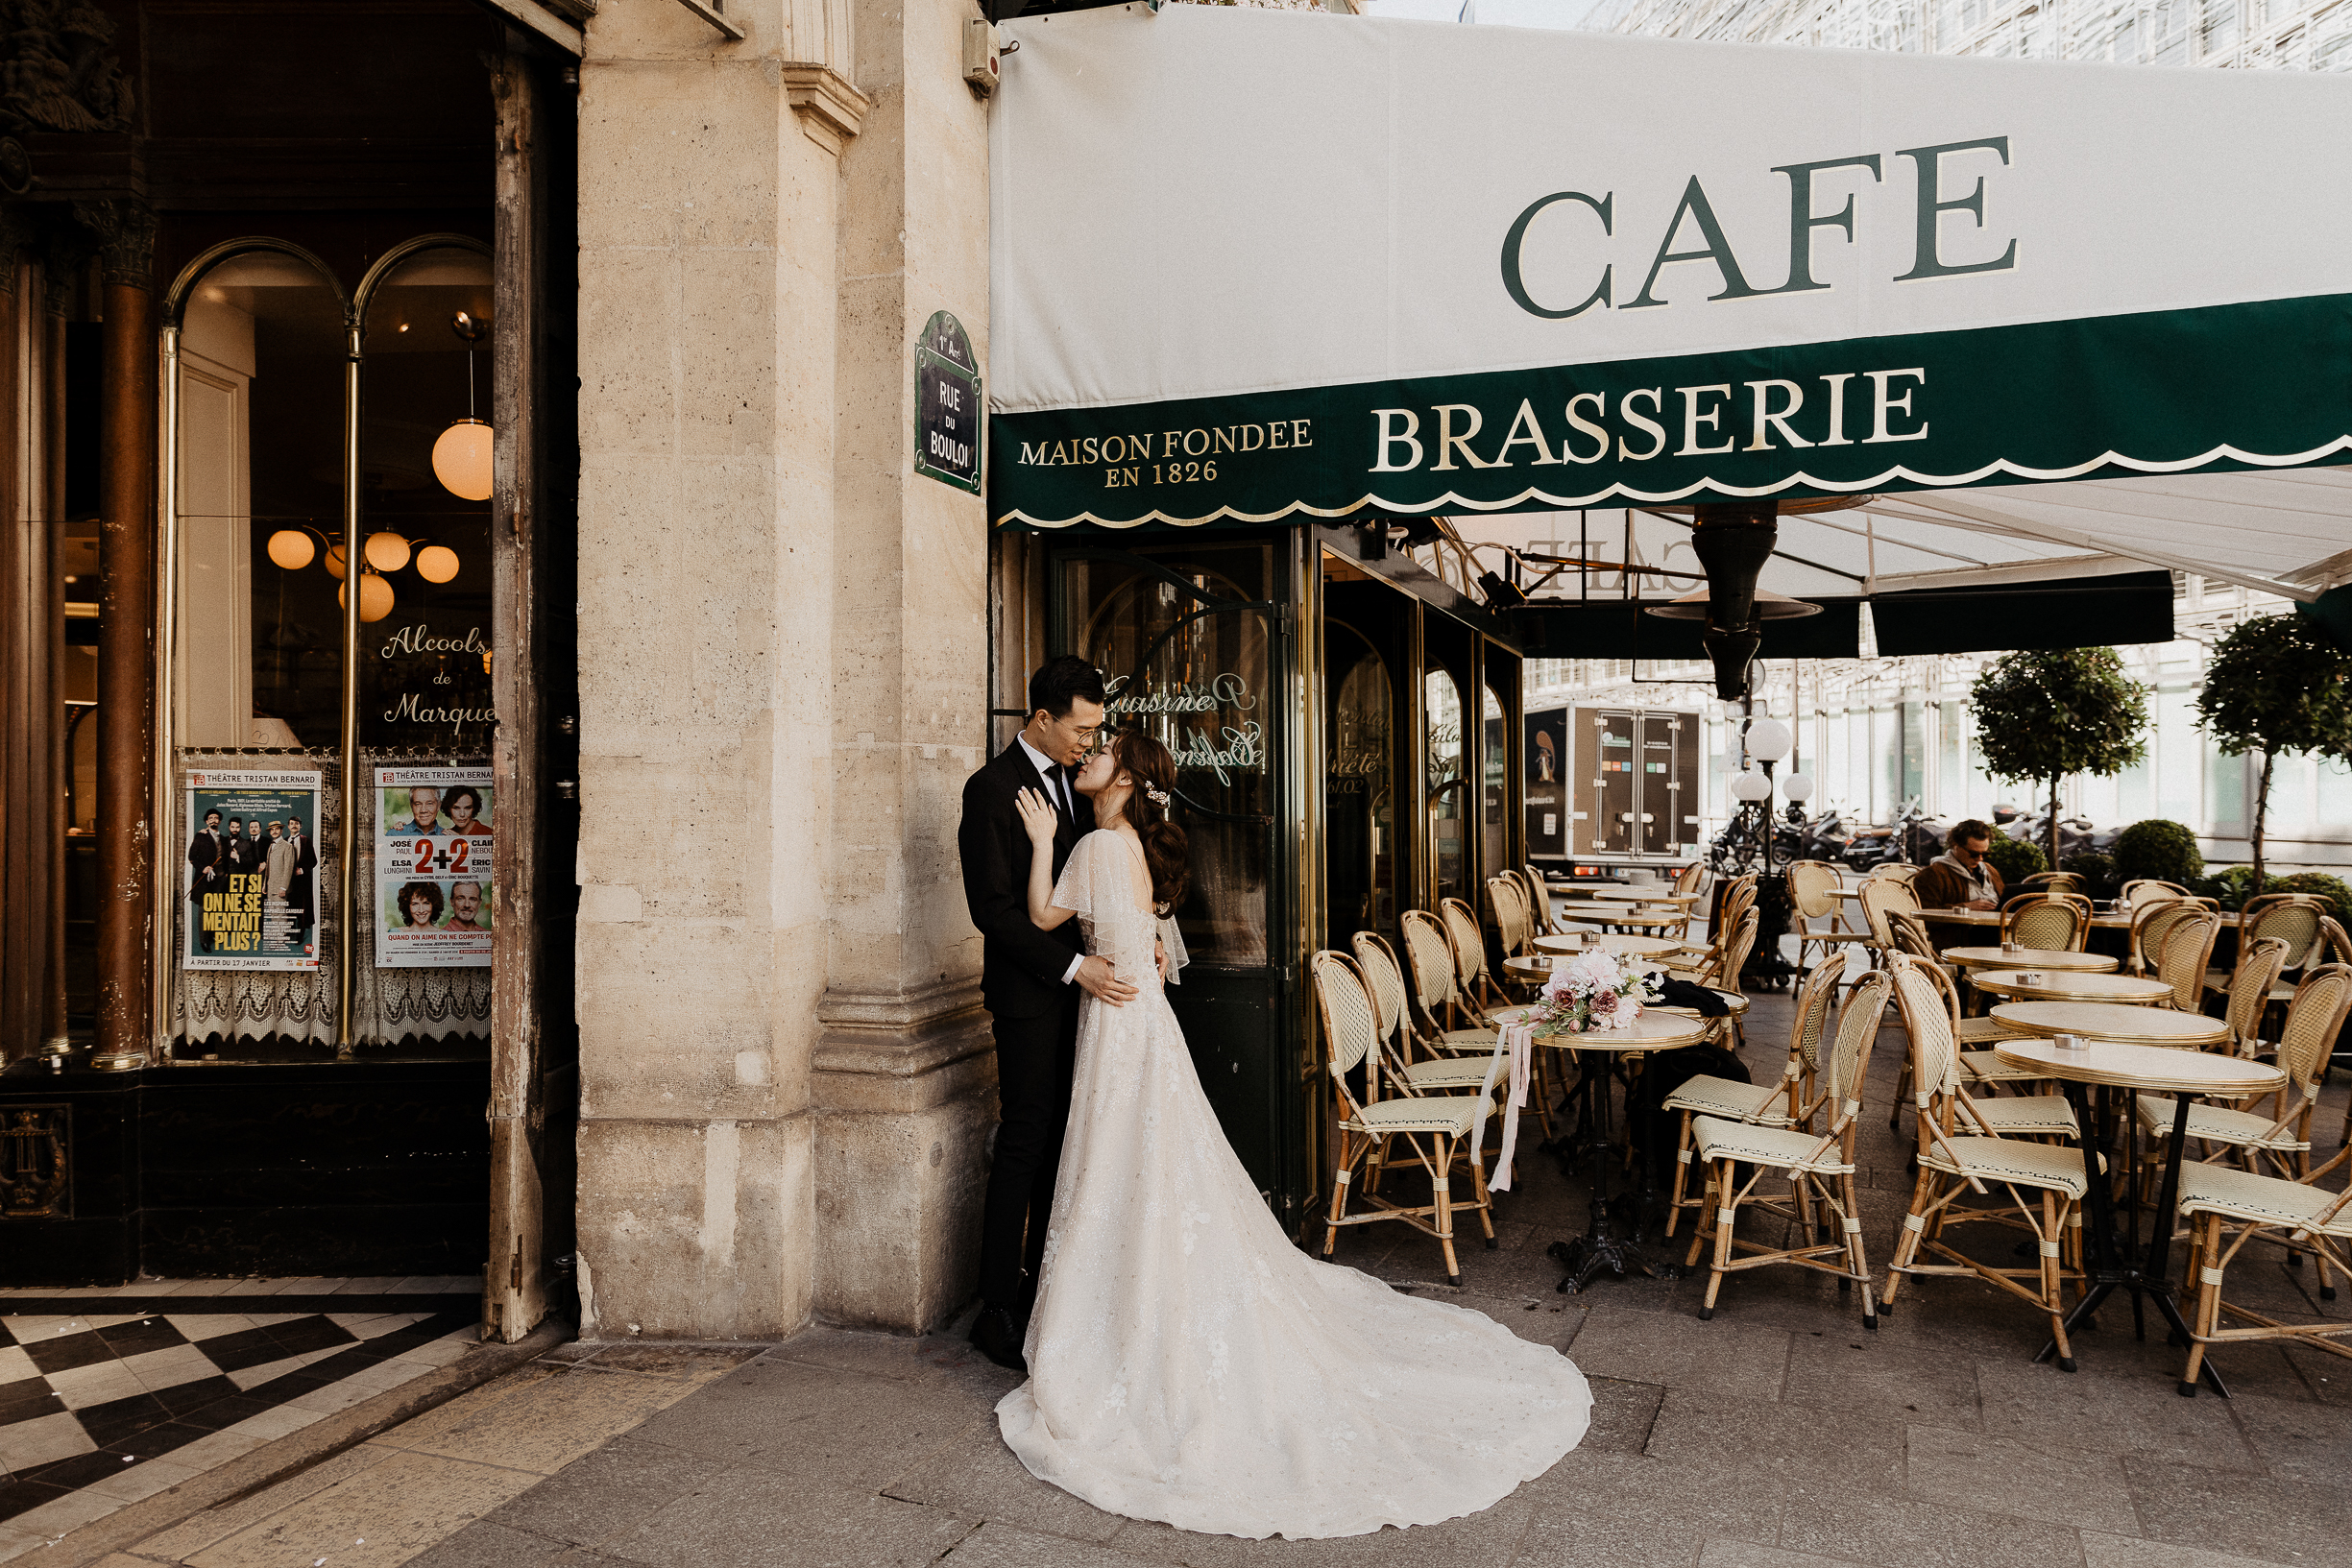 Bride and groom at a cafe in Paris